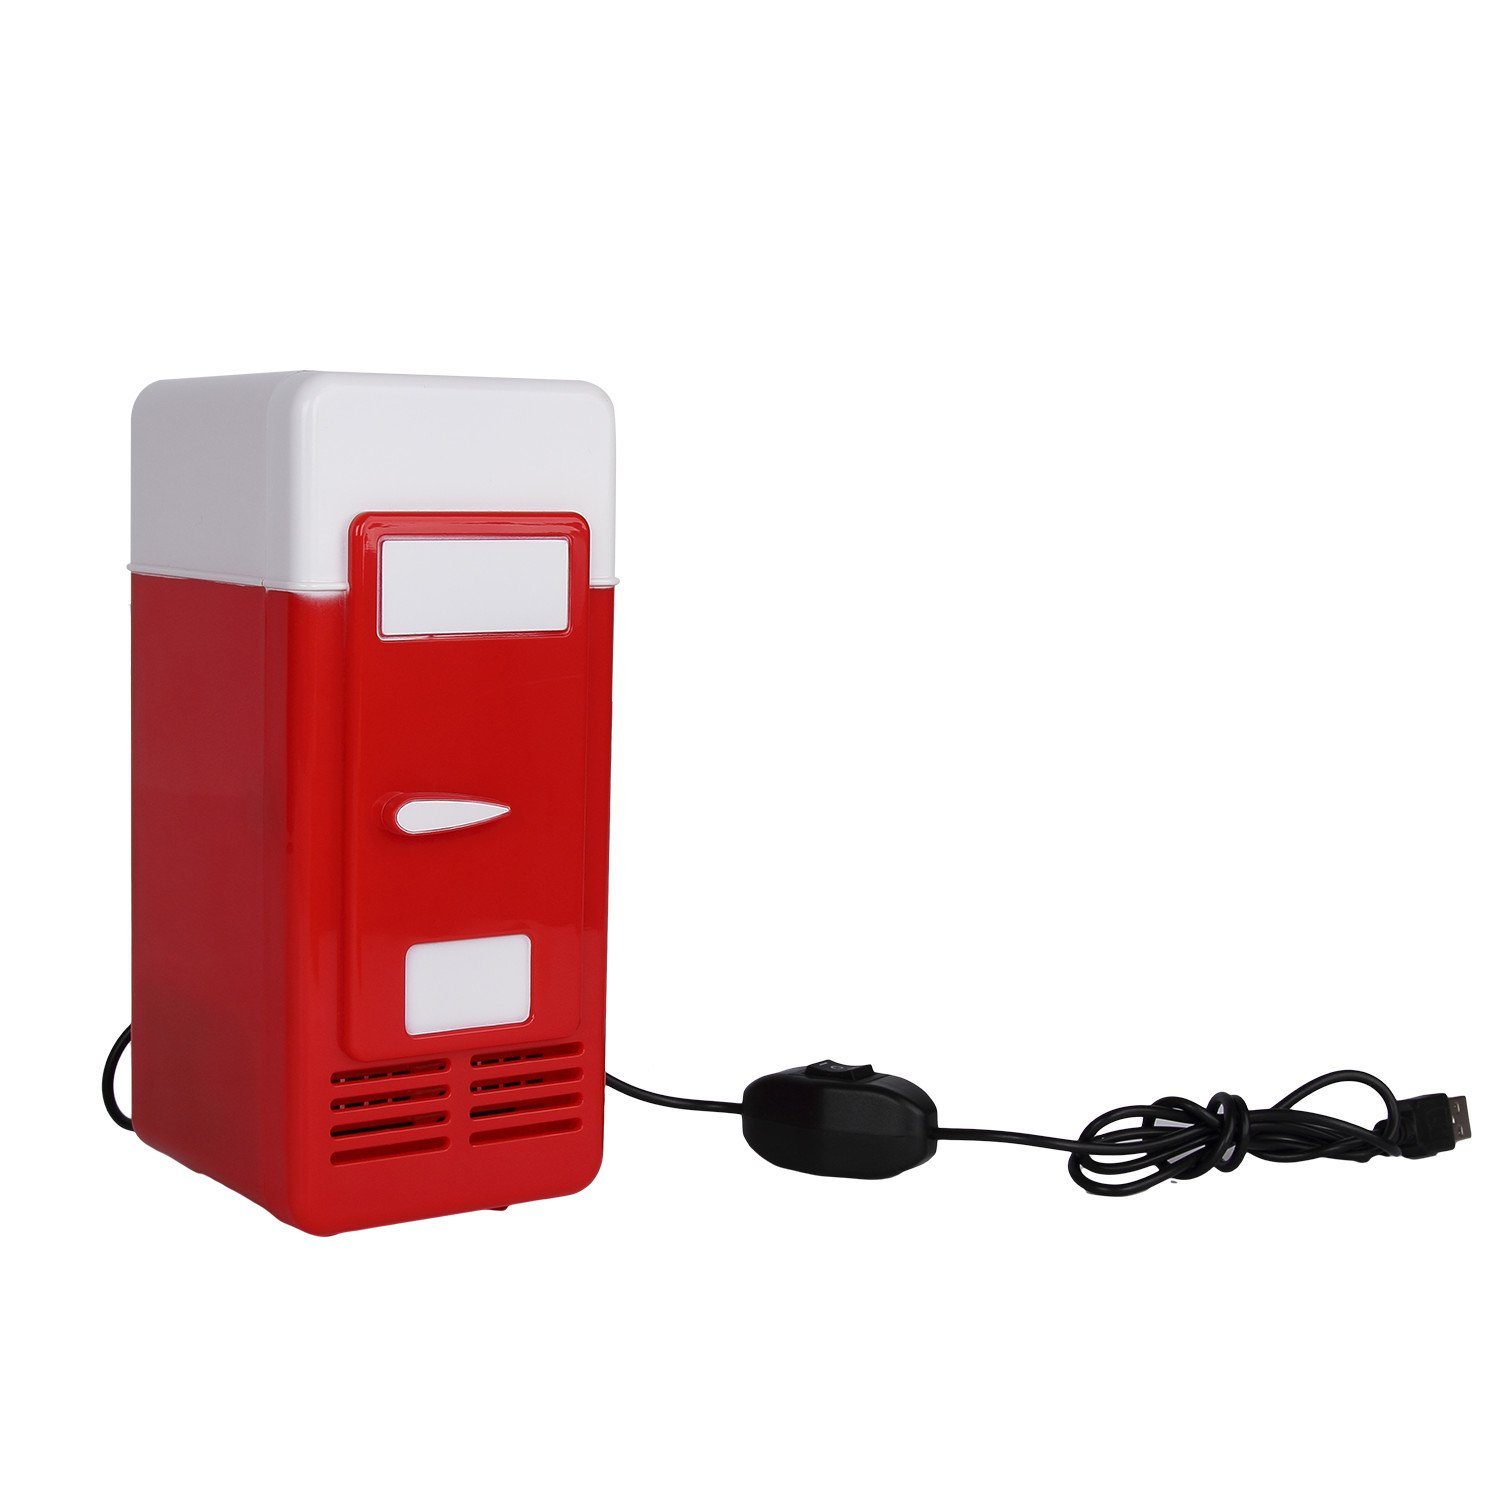 Discoball® USB Mini LED Fridge Beverage Drink Cans Cooler Warmer (Red)